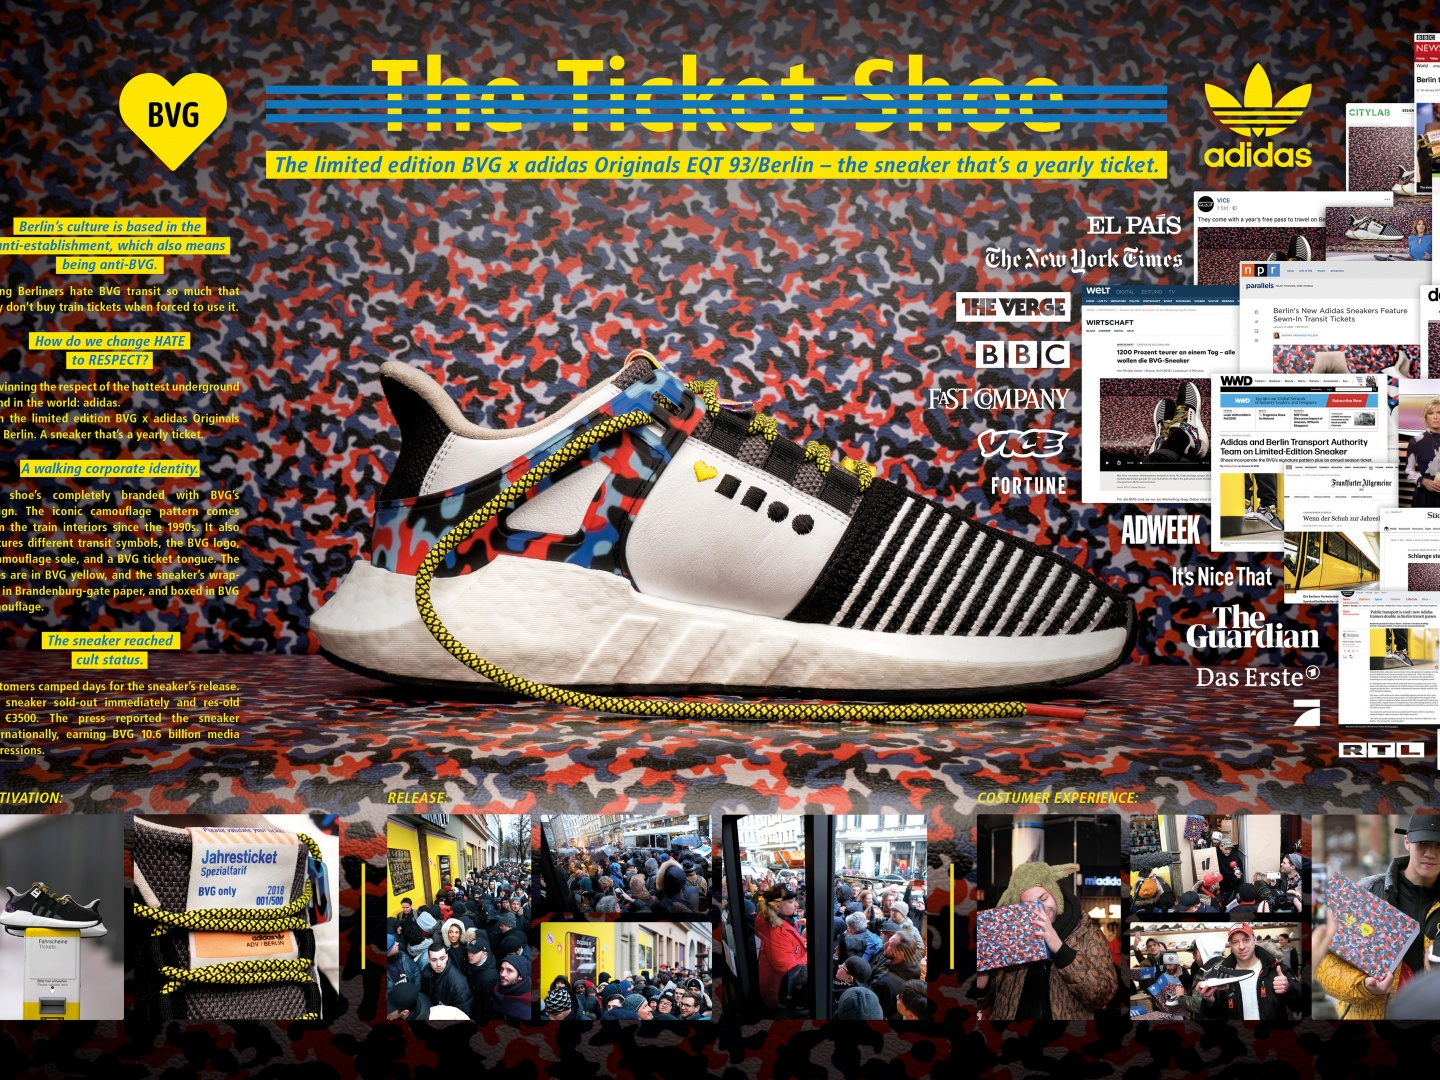 BVG x adidas – The ticket-shoe Thumbnail